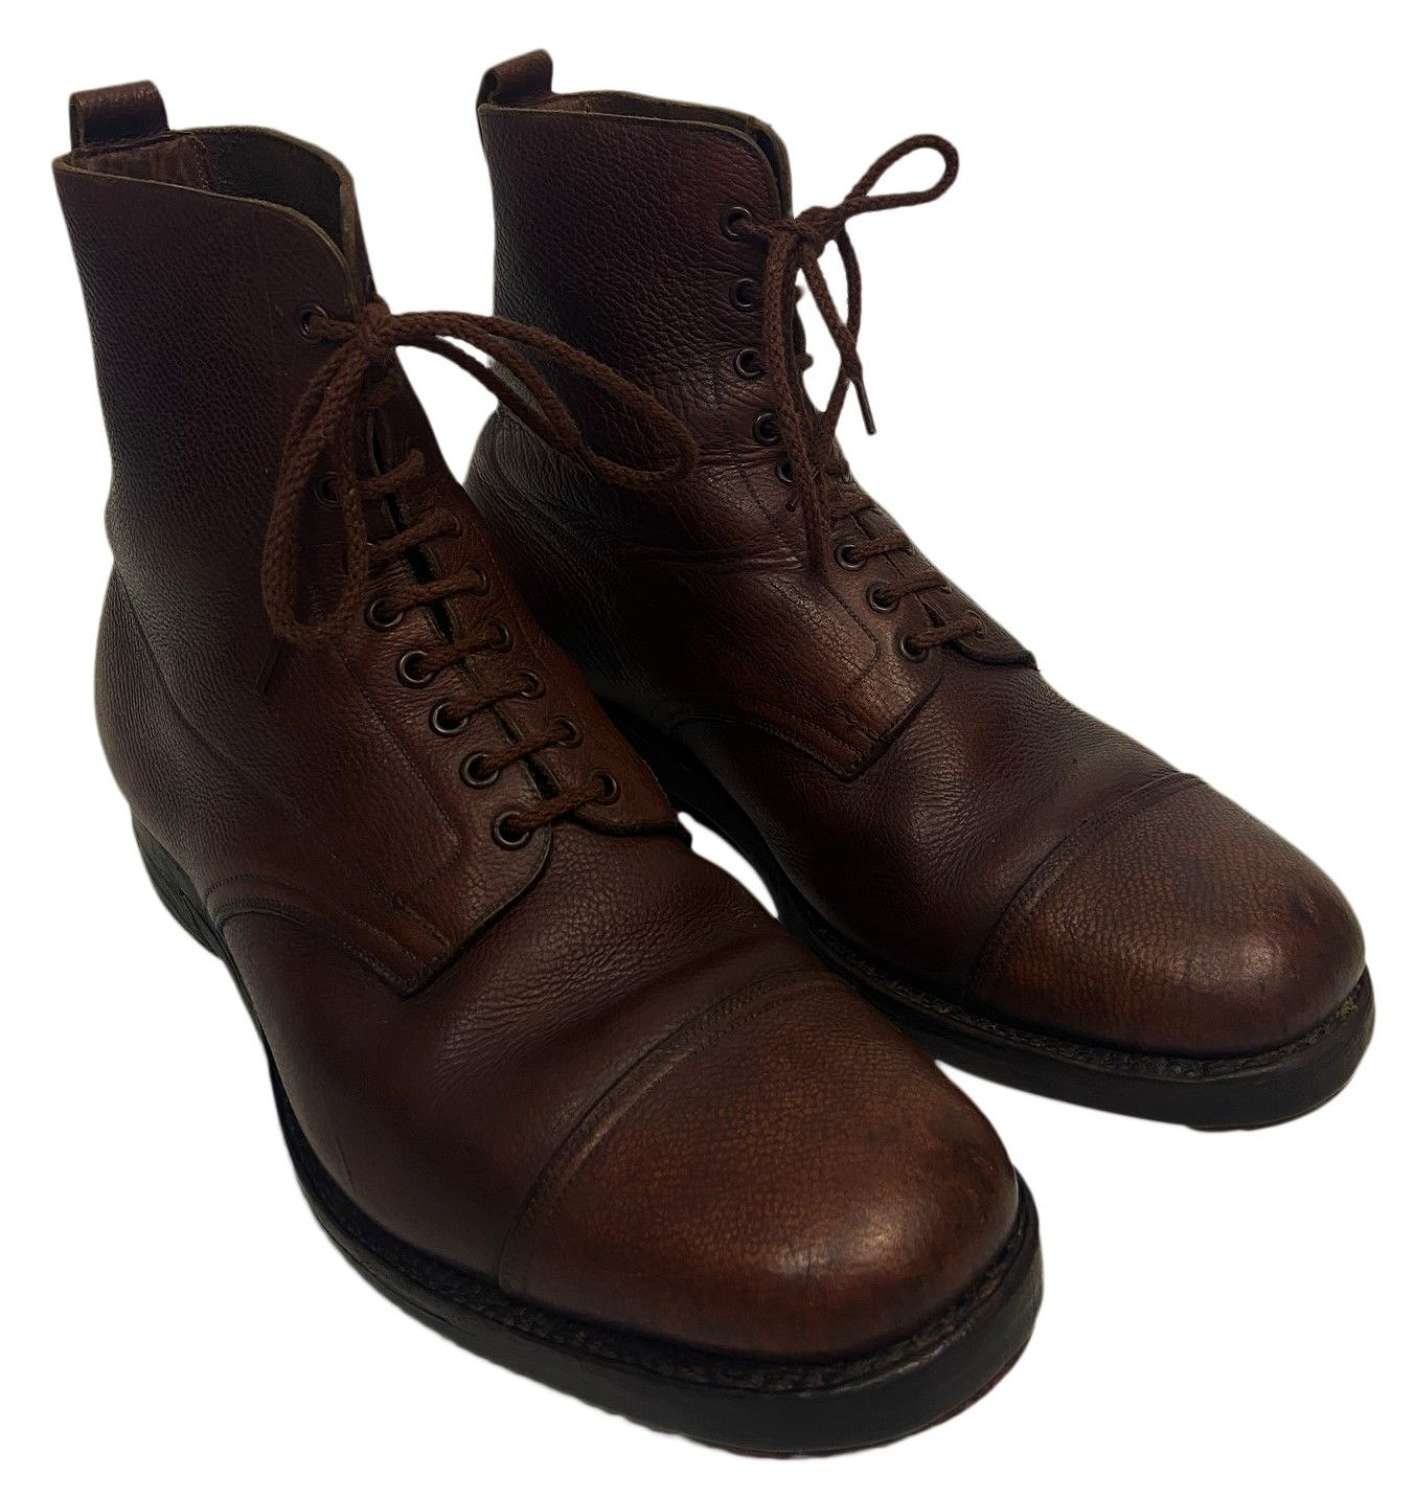 Original WW2 British Army Officers Brown Ankle Boots